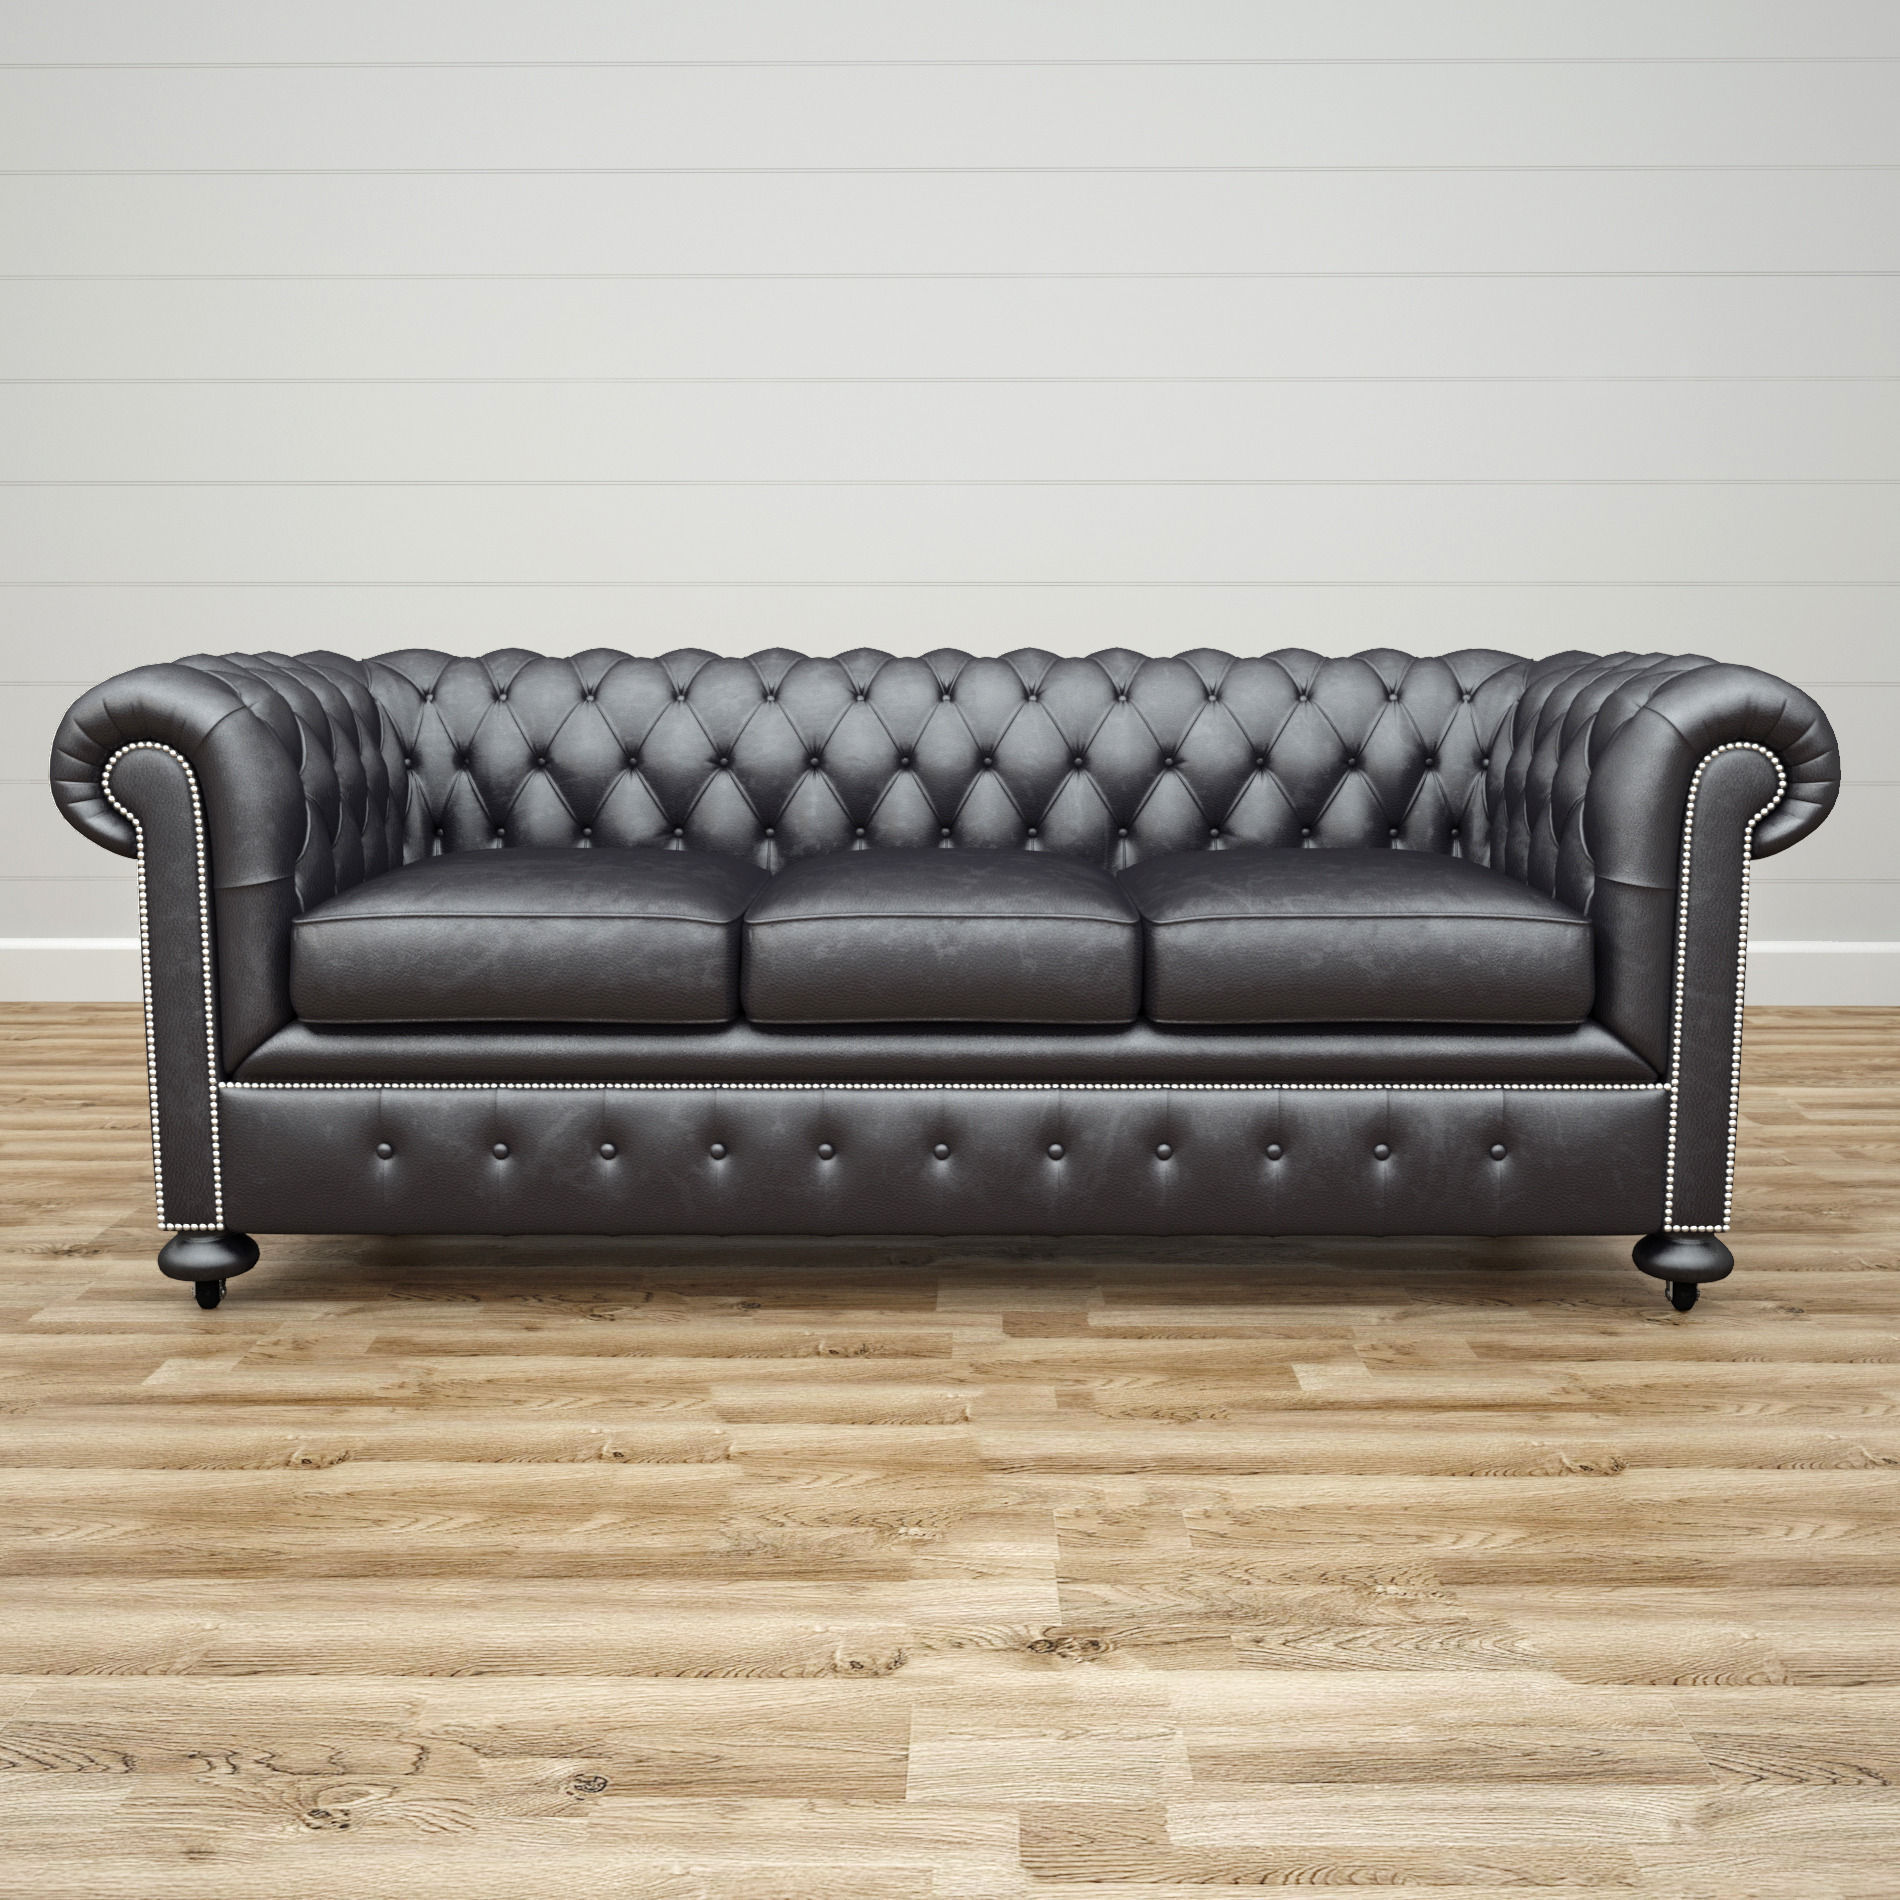 clic chaise longue uk with William Sofa on Sofa Bed Argos Co Uk likewise Friheten Three Seat Sofa Bed Skiftebo Dark Grey Art 10341150 together with Beddinge Sofa Bed additionally F 1107903 Del8004399500358 together with Sofa Bed Uk.